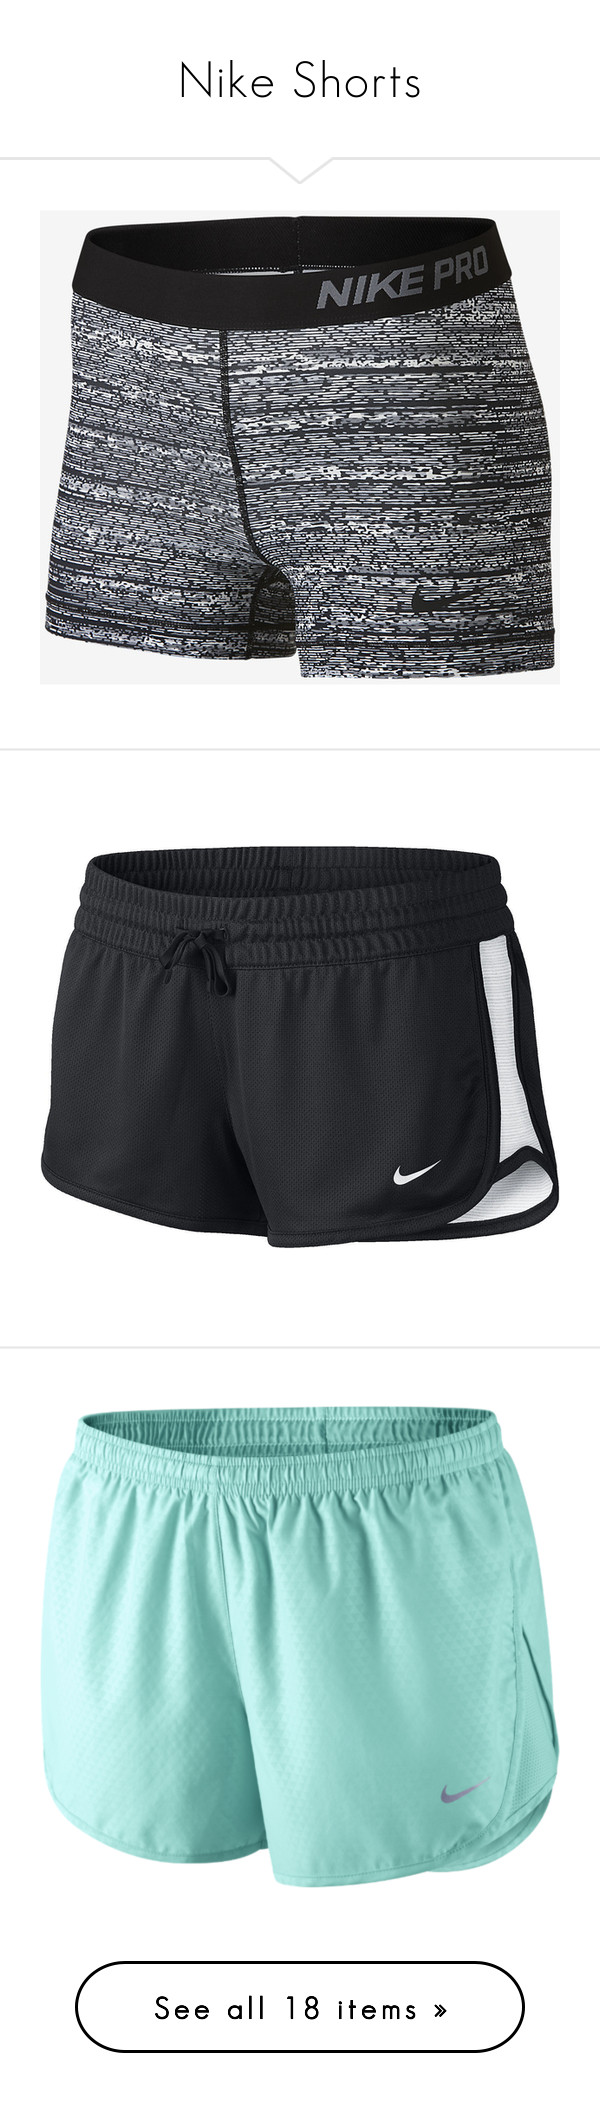 """Nike Shorts"" by trouble-xx ❤ liked on Polyvore featuring activewear, activewear shorts, shorts, bottoms, nike, sports, workout, black, nike sportswear and logo sportswear"